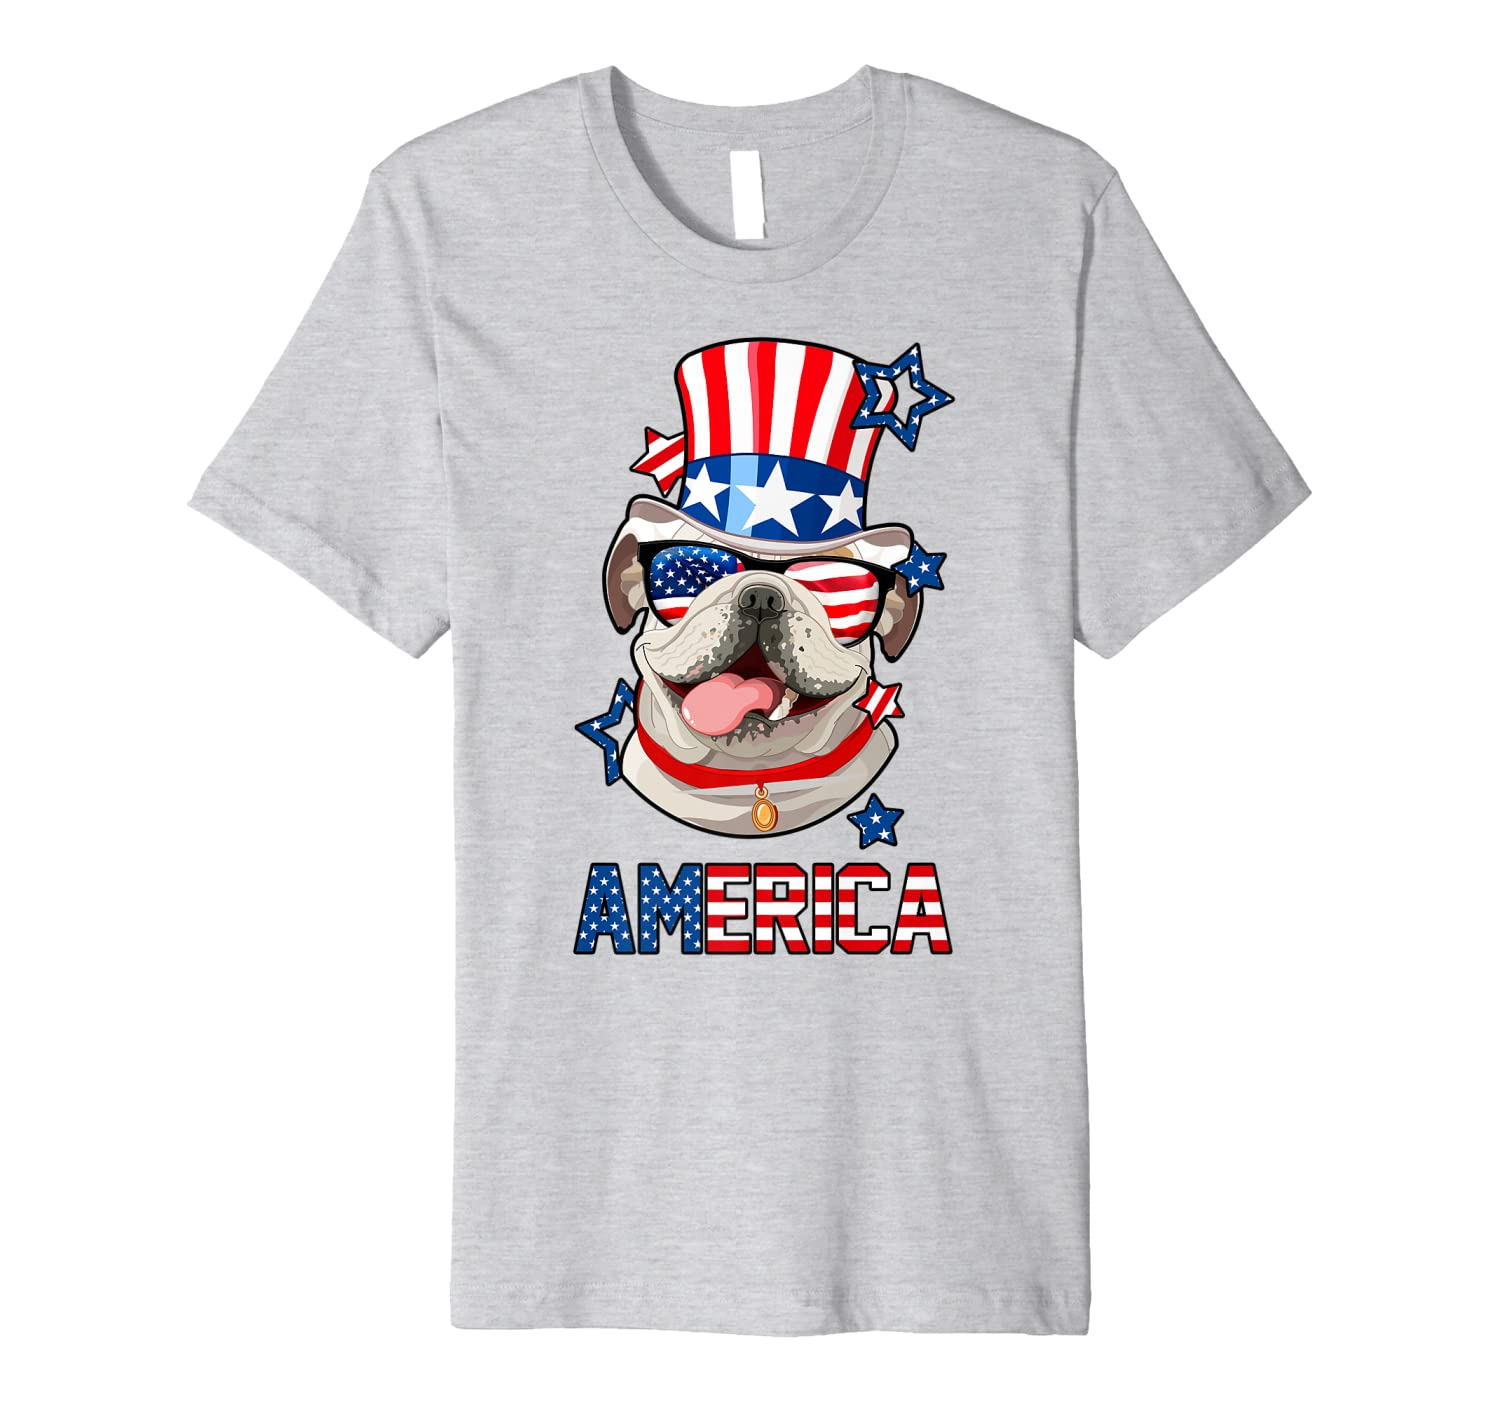 America English Bulldog Dog 4th Of July Mens Womens Usa Flag Premium T-shirt Unisex Tshirt